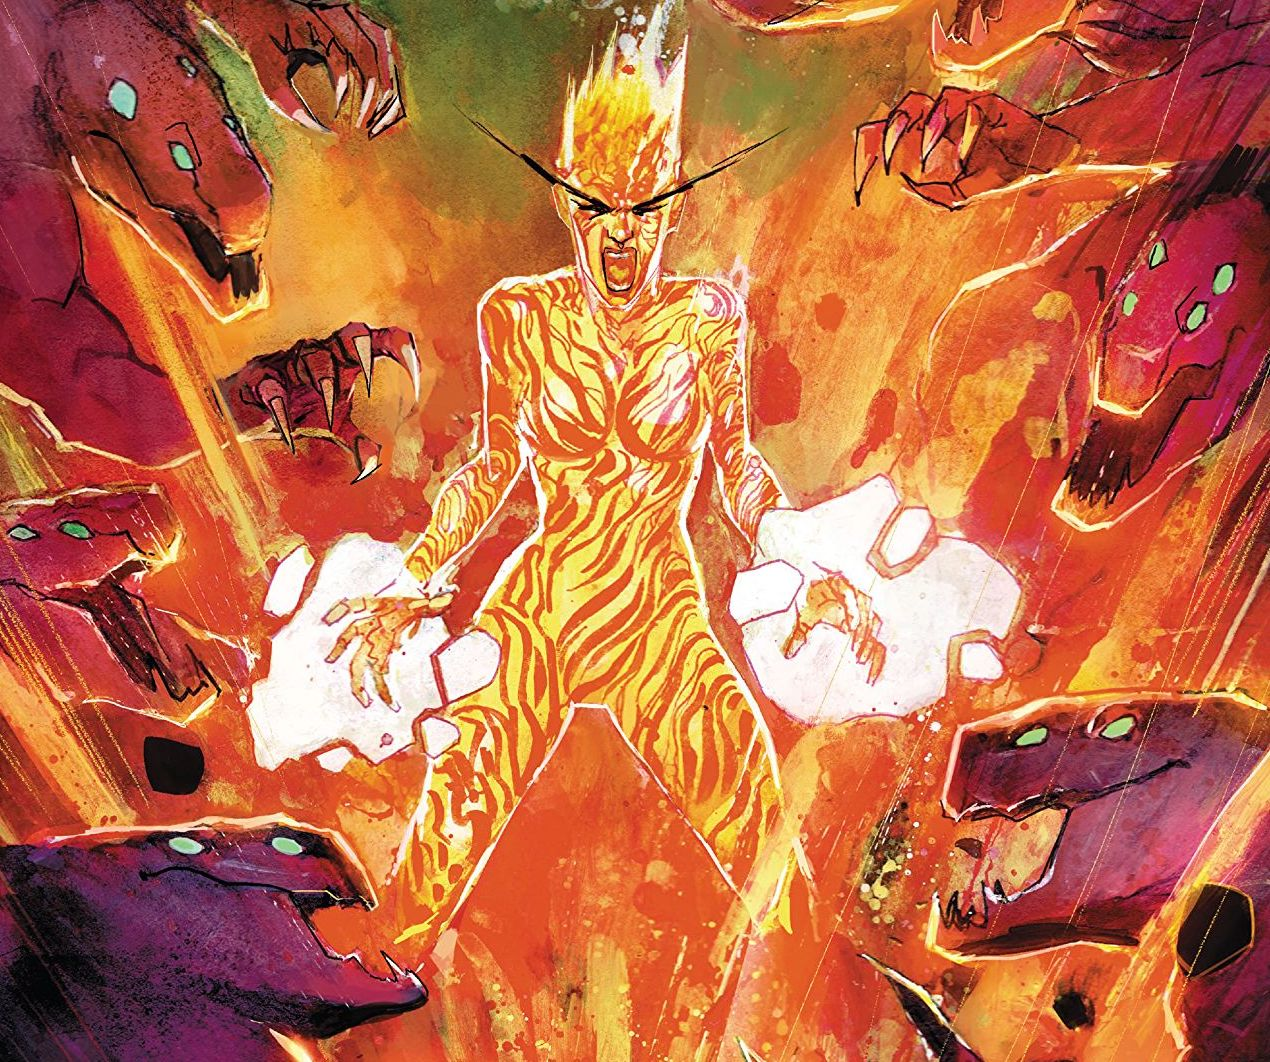 New Mutants #8 review